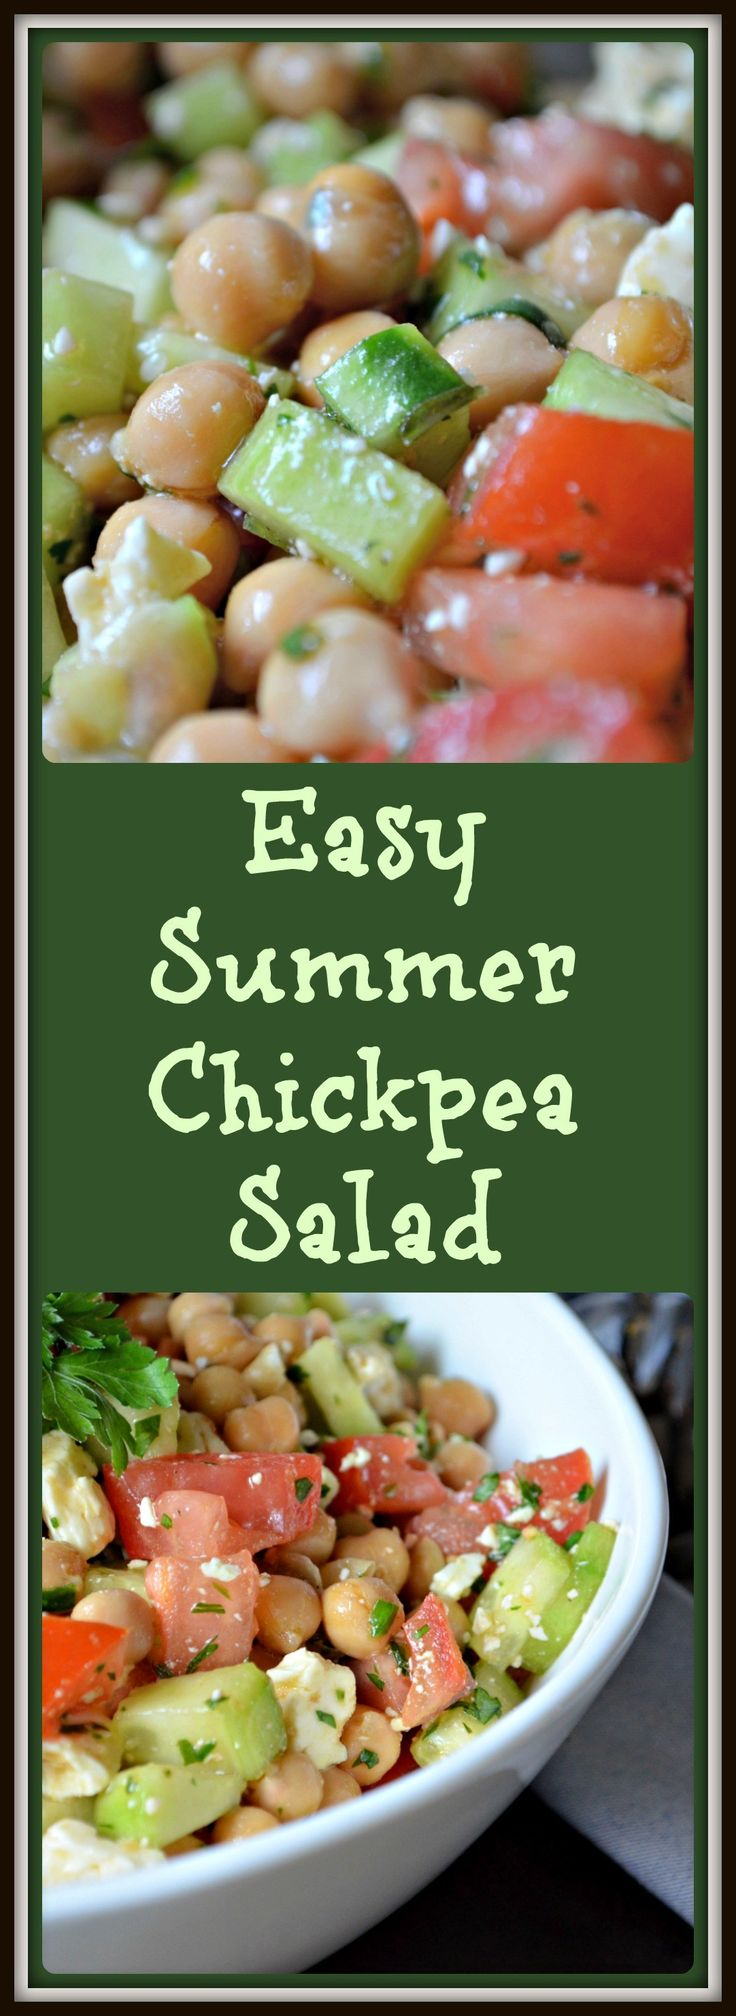 Easy Summer Chickpea Salad #SundaySupper